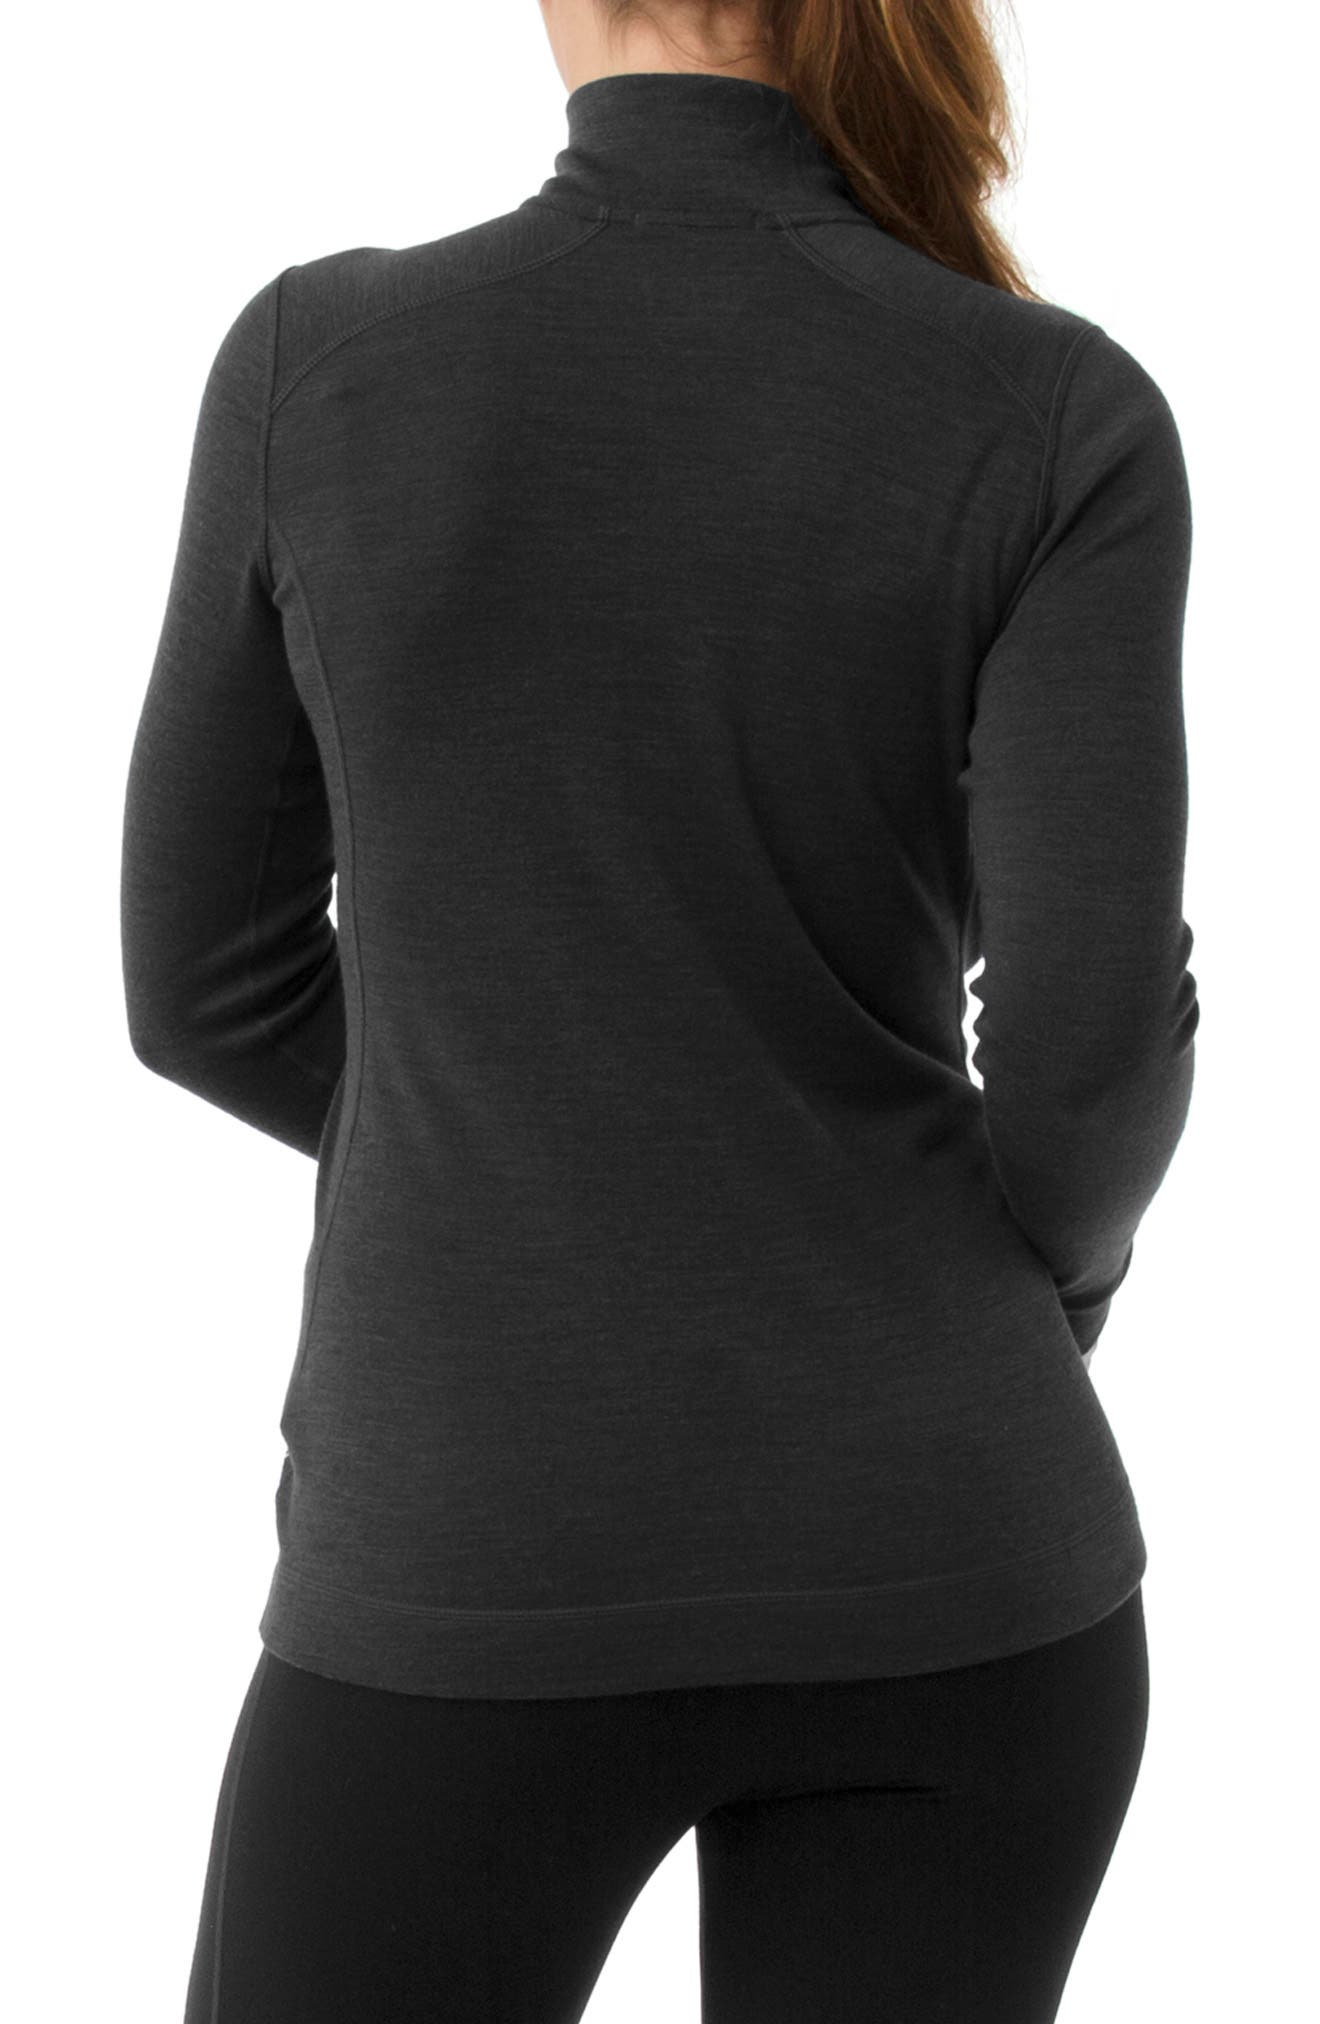 Merino 250 Base Pattern Layer Quarter Zip Top,                             Alternate thumbnail 2, color,                             CHARCOAL HEATHER